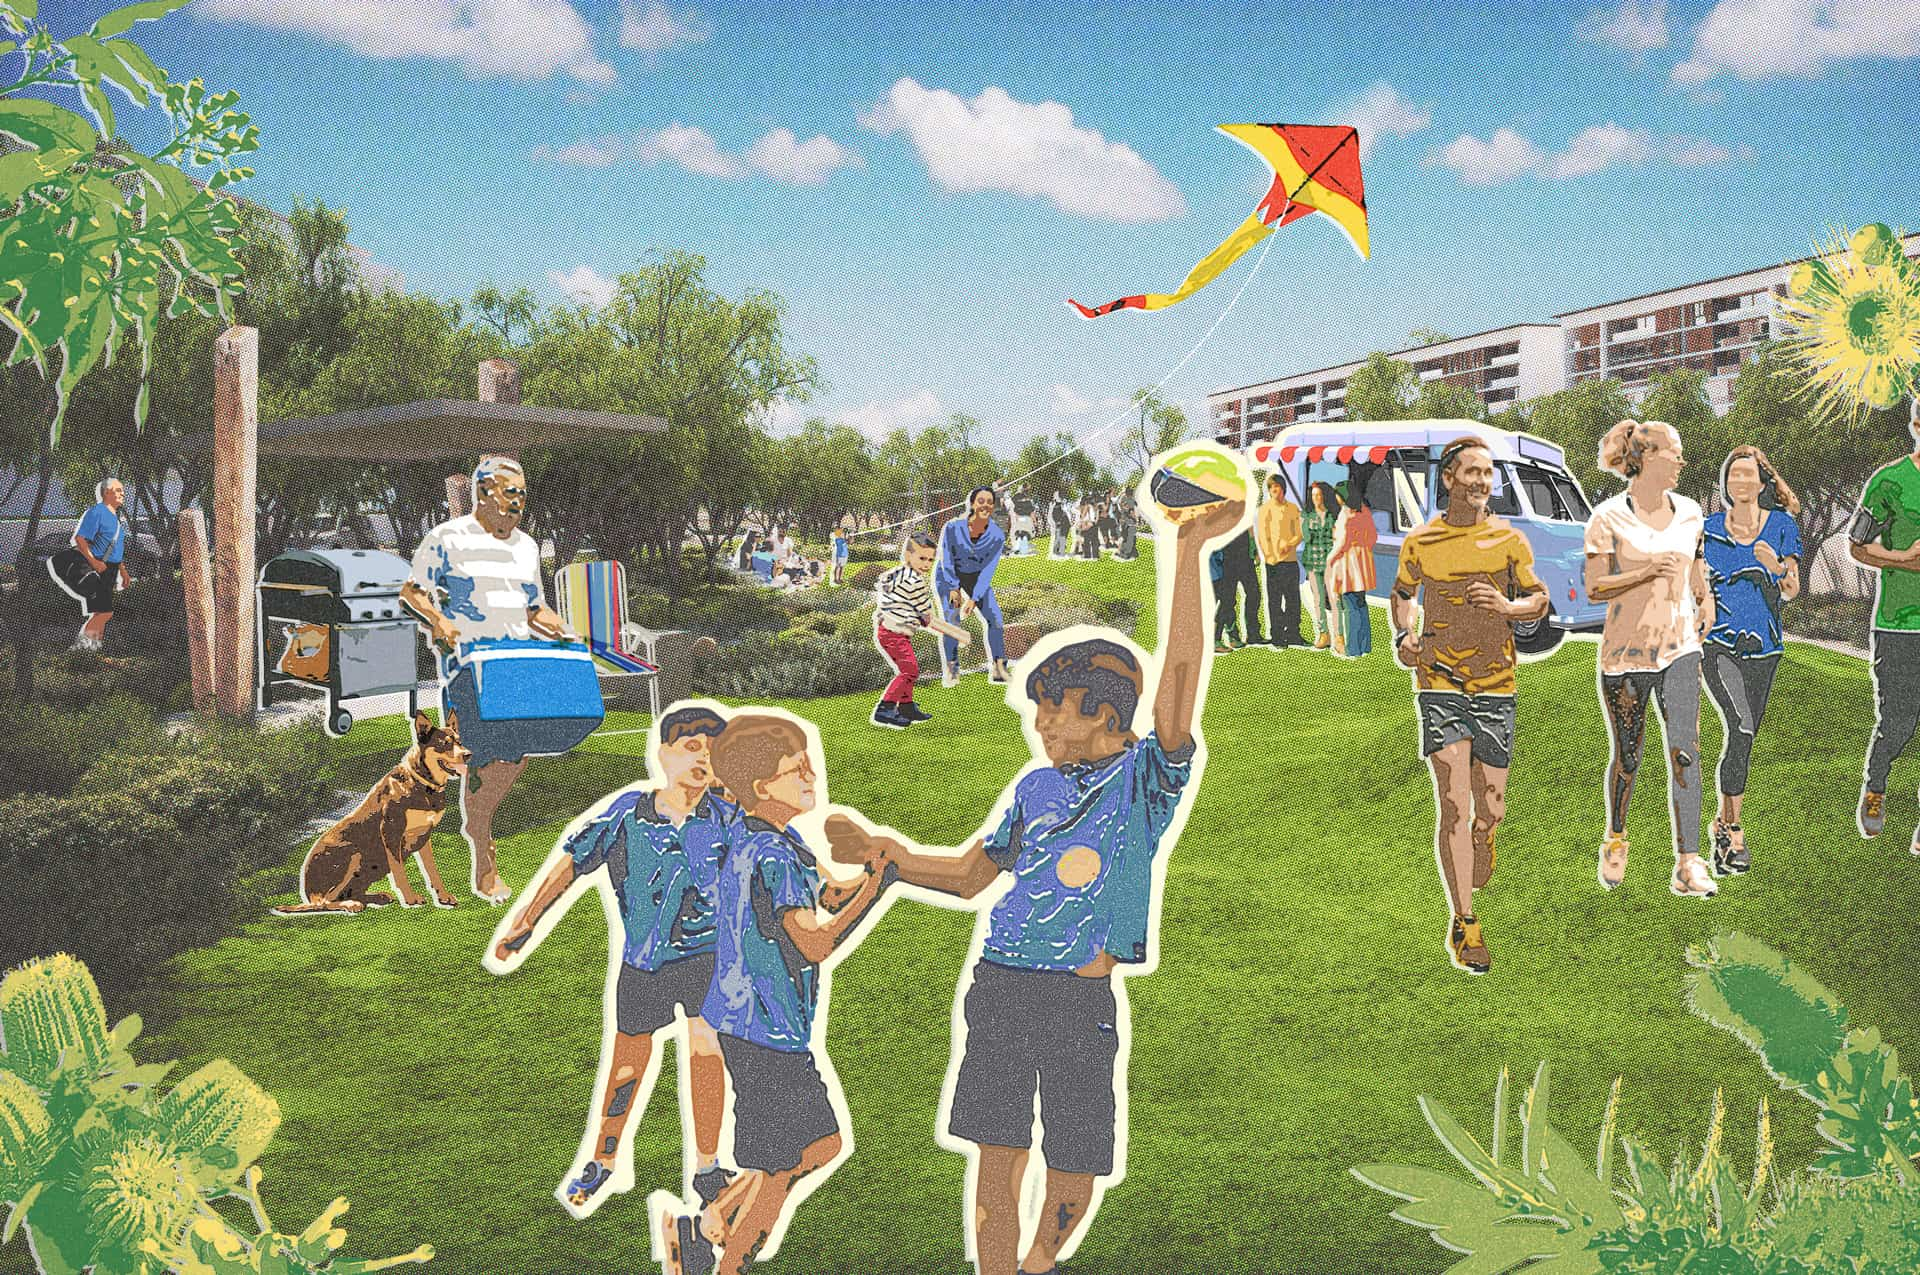 New Junction restores the heart of Midland - The town of Midland – 15km east of Perth – is an age-old meeting place for the Noongar people and, since 1890, a meeting place of people from diverse cultures and backgrounds. It's a place where rural WA meets the city – and a junction of vital road and rail networks which link the state's agricultural and mining heartlands to the coast.